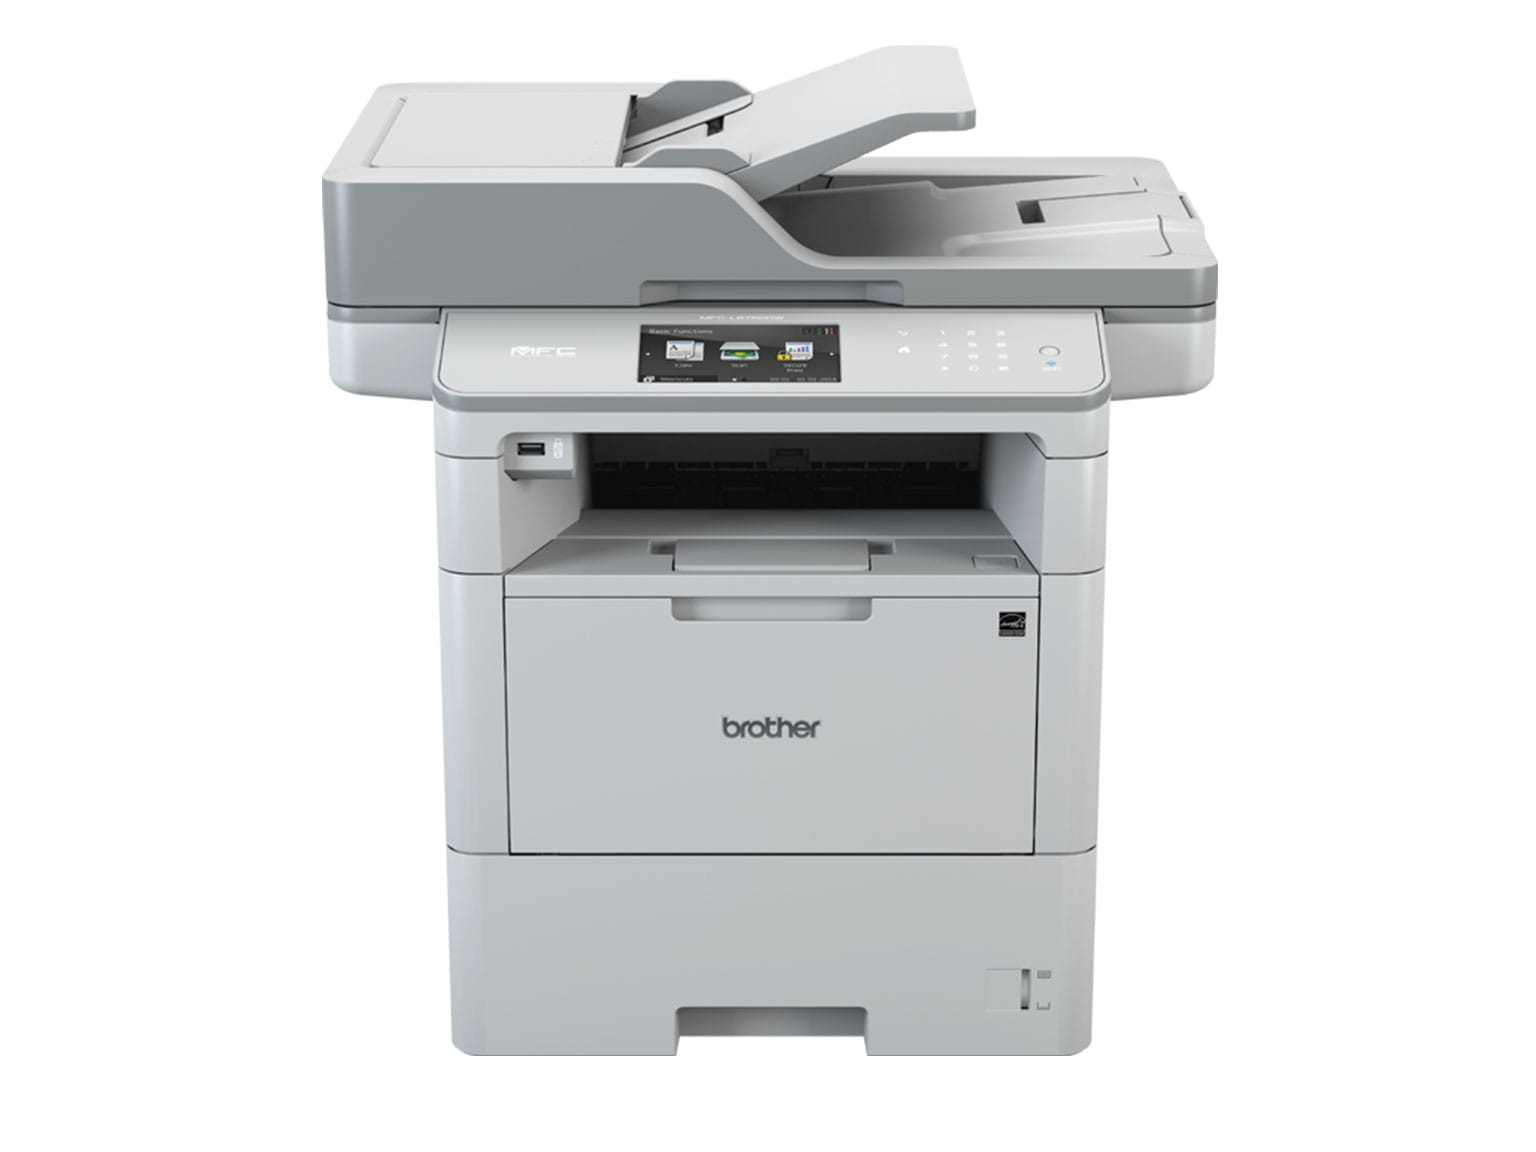 Brother mono laser all-in-one front view